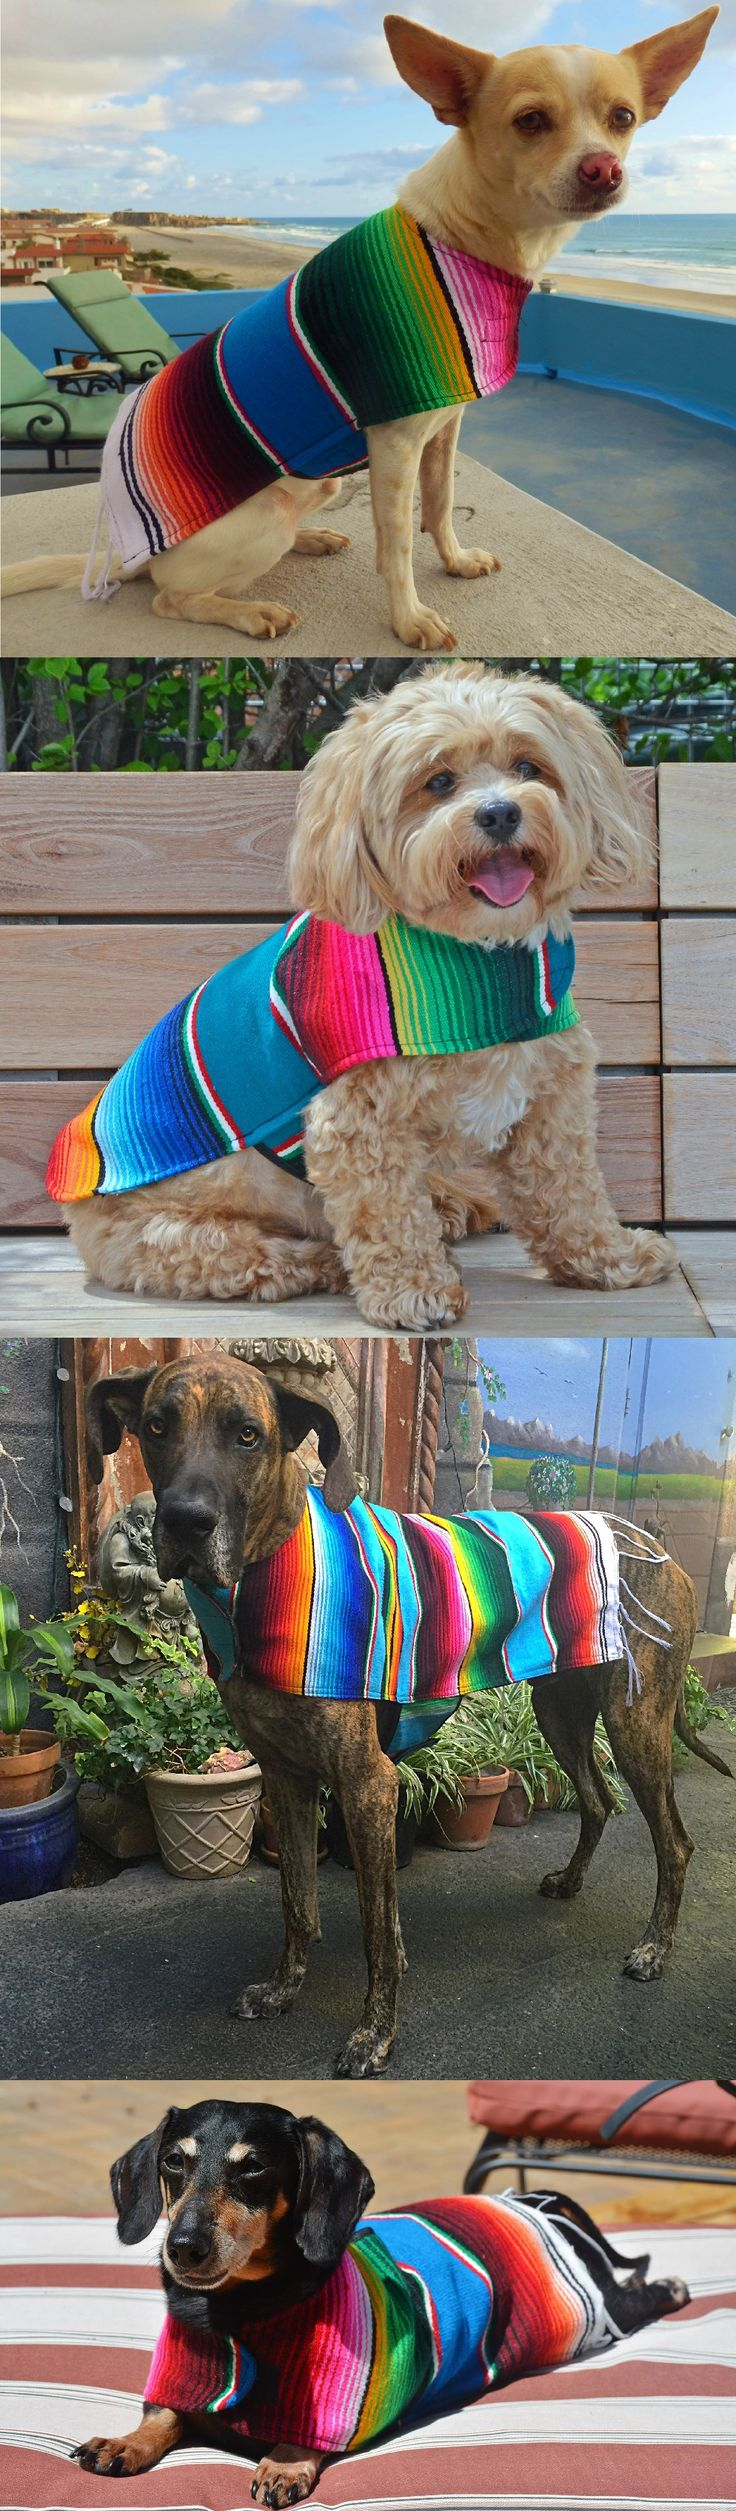 "Spring Sale! Use code ""BAJA20"" and save 20% off your poncho! *Proceeds donated to Baja Spay and Neuter Foundation. ☀️"